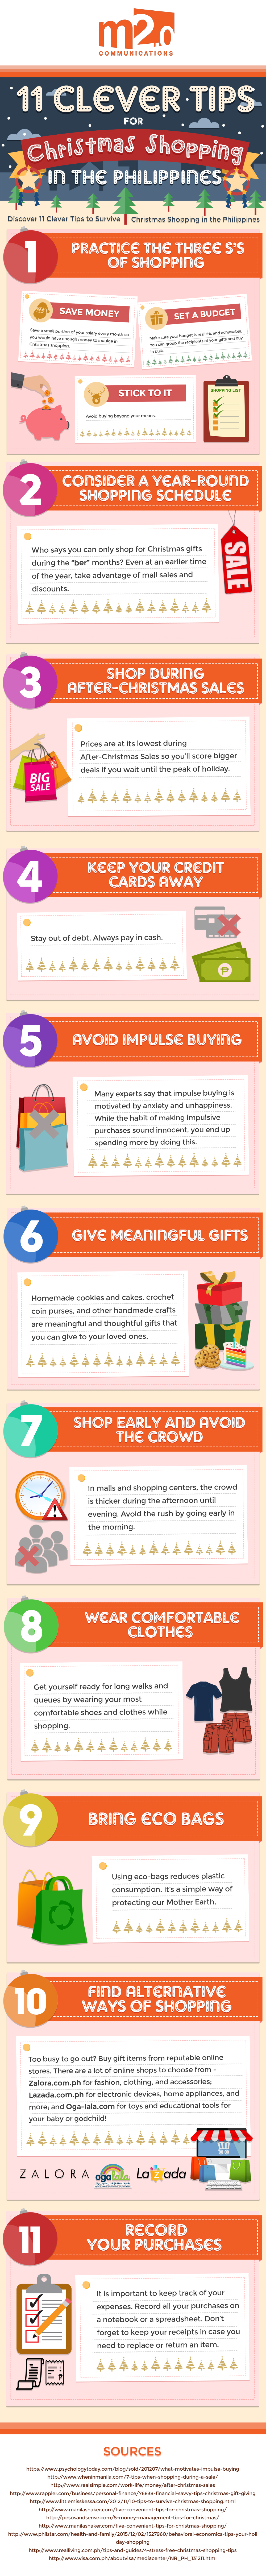 Christmas Shopping Top Tips